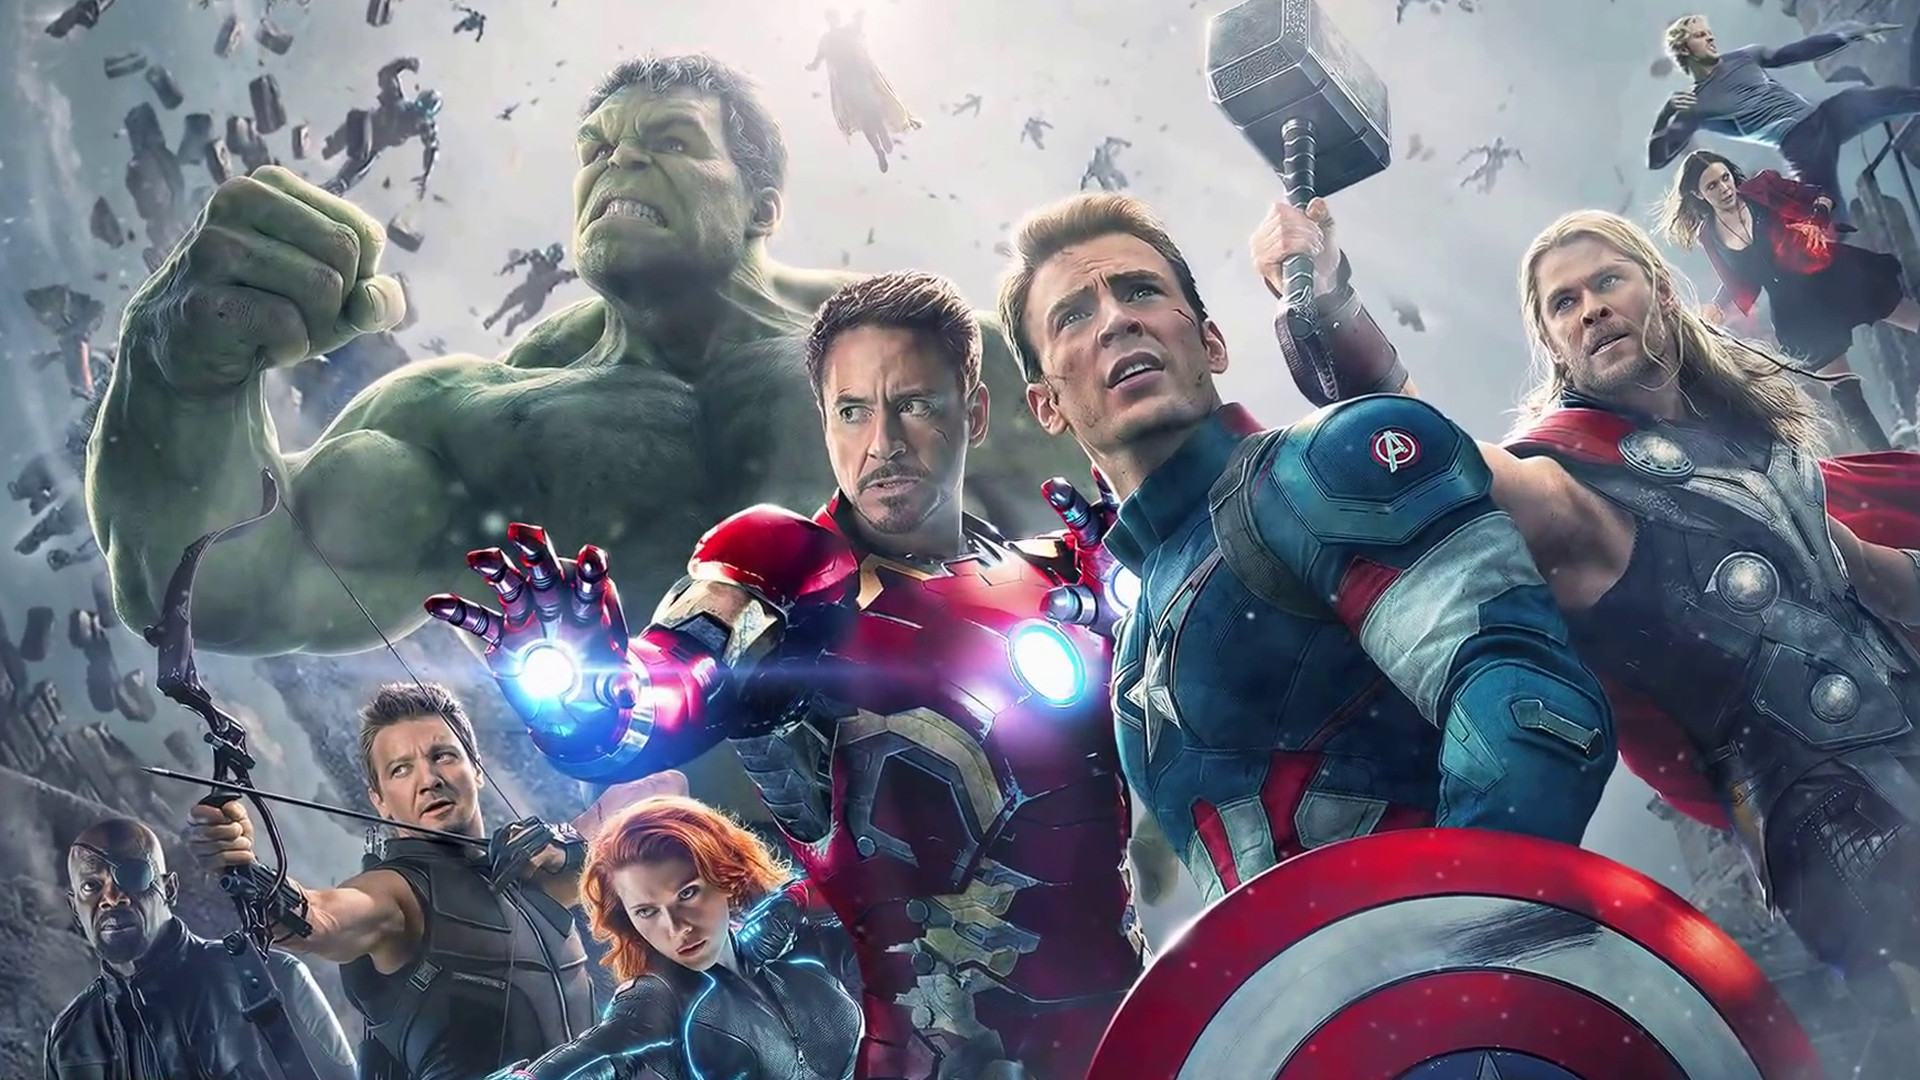 … Avengers: Age of Ultron Wallpaper by sachso74